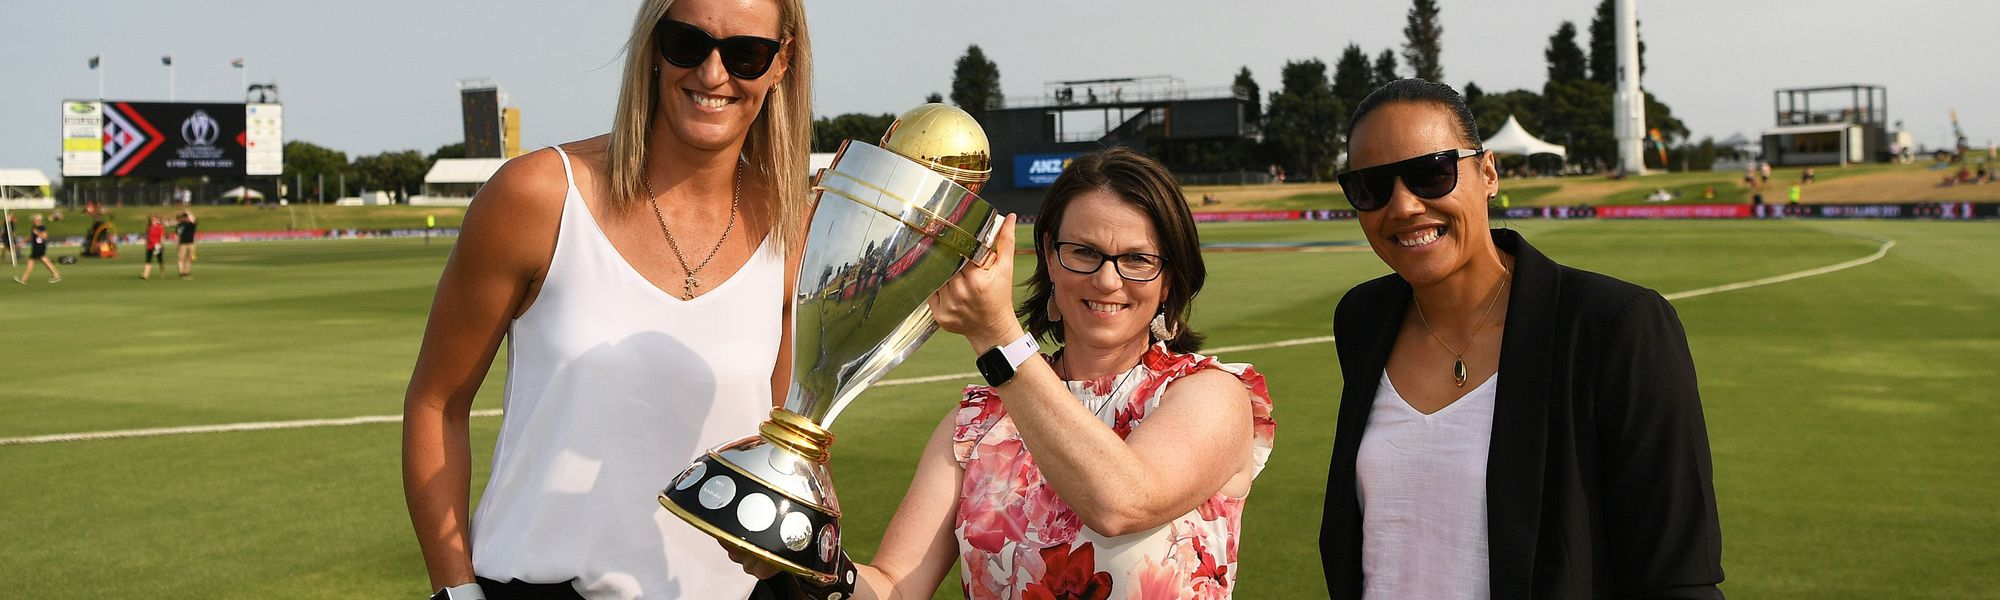 Tauranga's Bay Oval in New Zealand rolled out the welcome carpet for three of the country's top sporting heroes on 2 February - Emily Drumm, Leana de Bruin and Honey Hireme-Smiler.